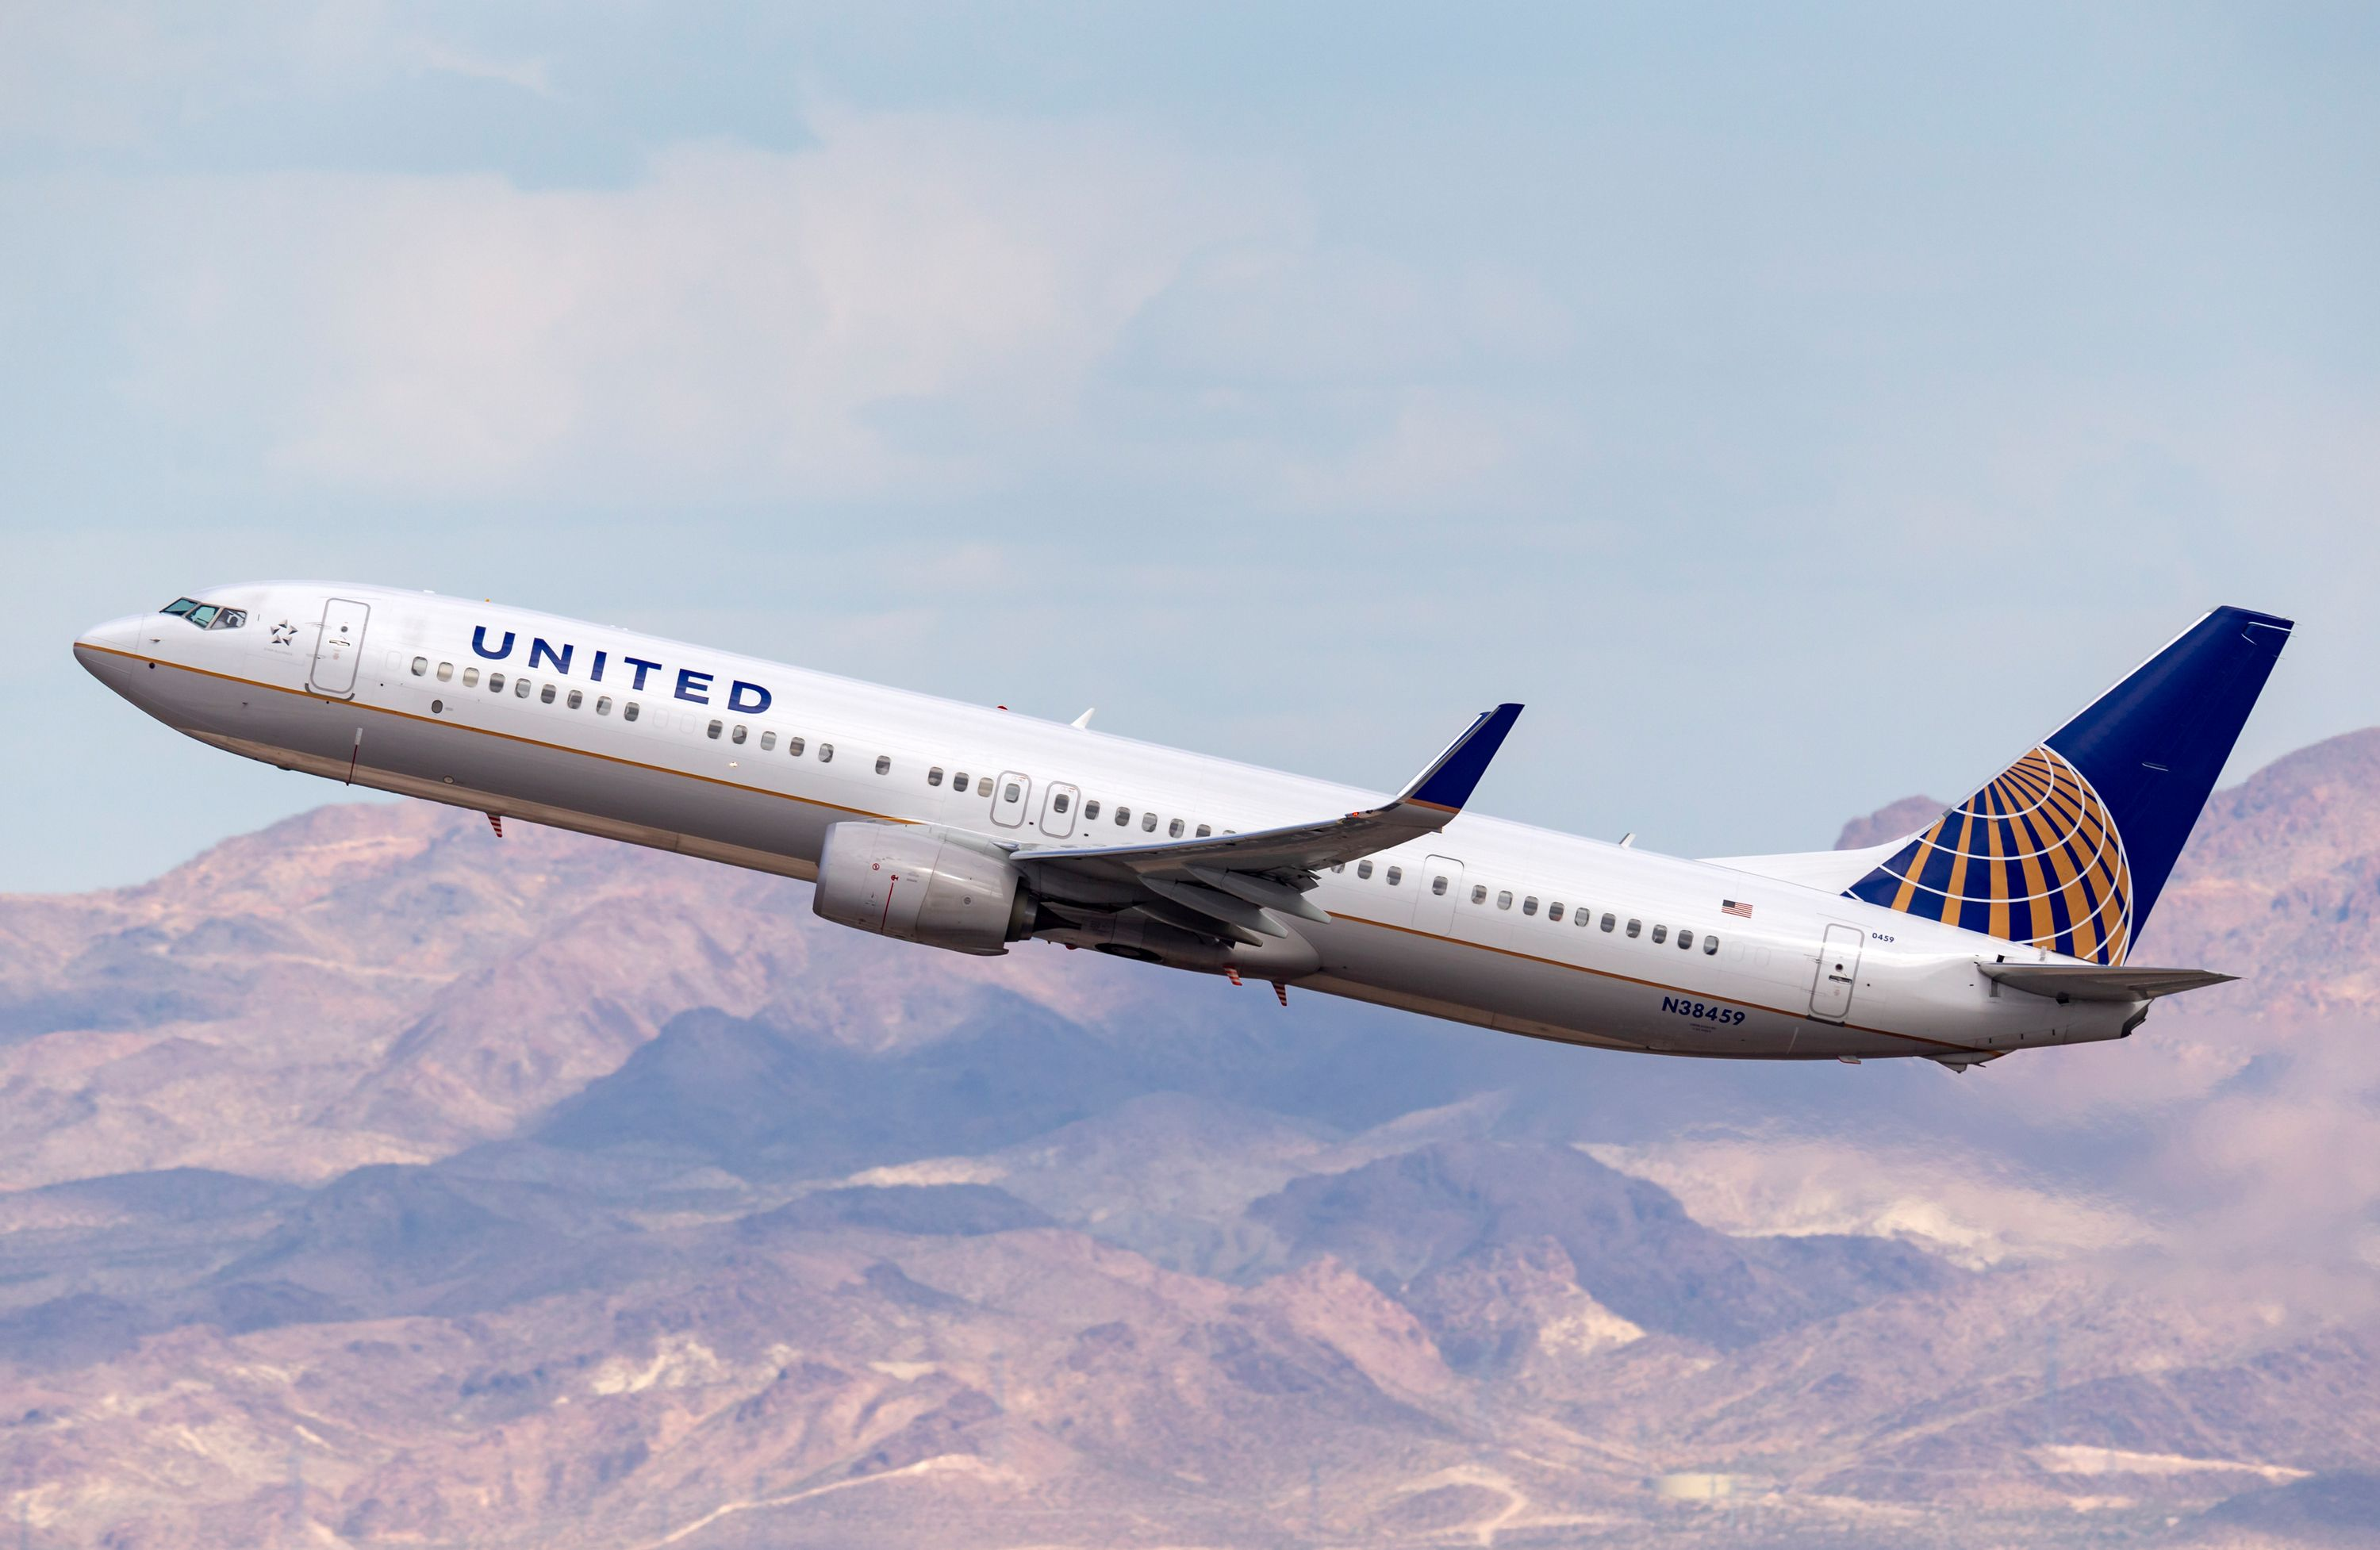 All About United Airlines New Flight Discount For Young Adults In 2020 United Airlines Flight Discounts The Unit